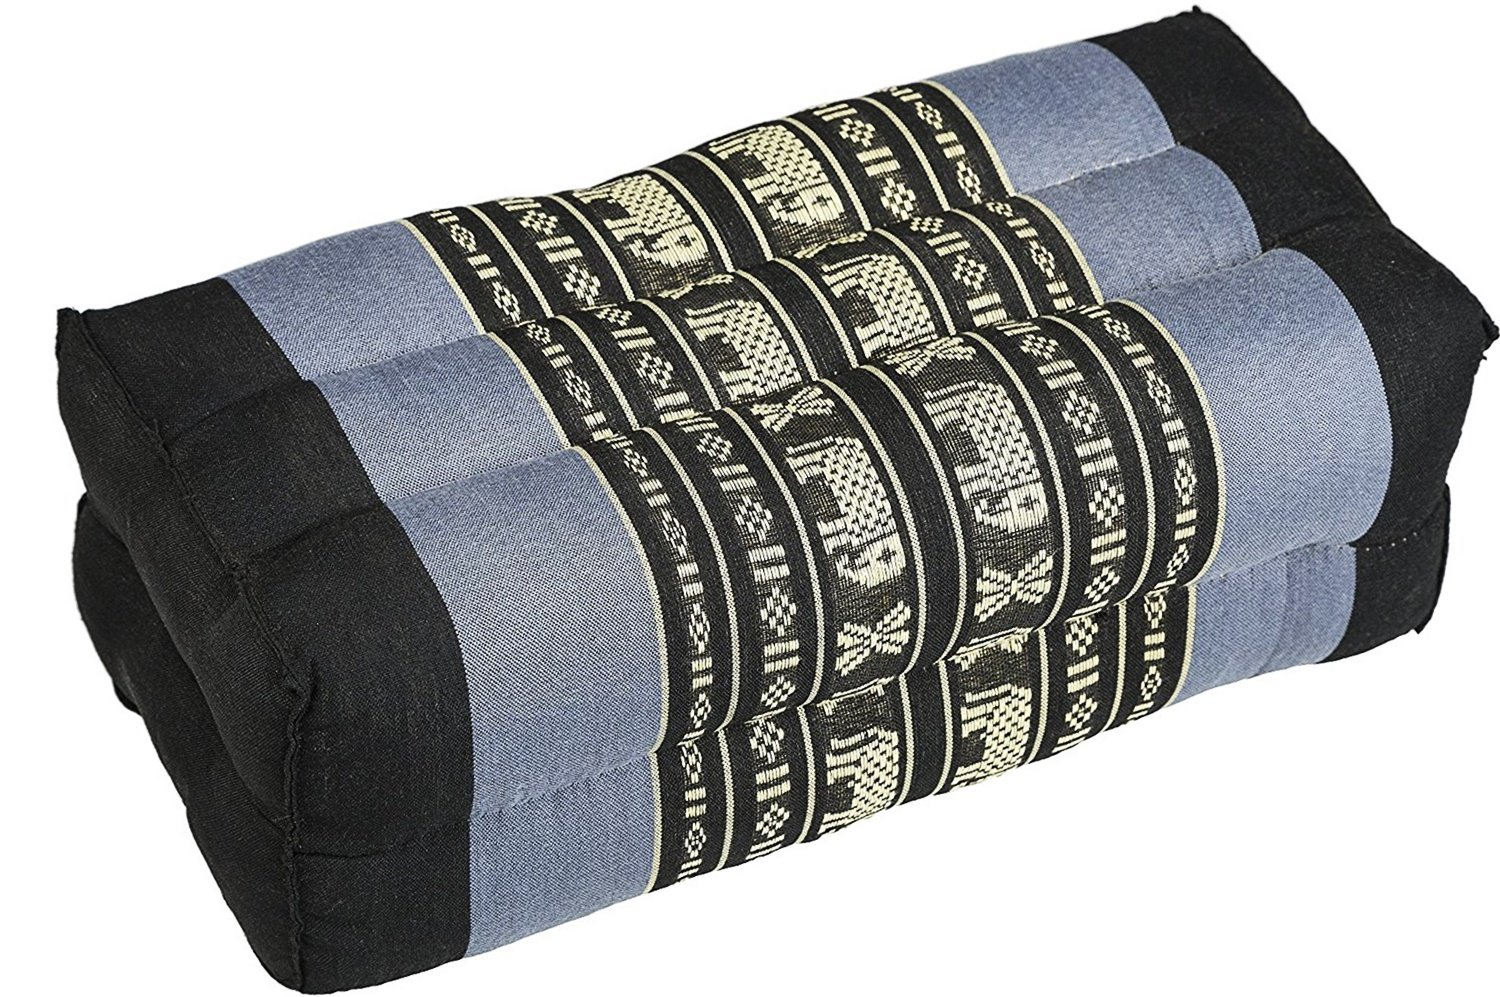 Thailand: Pillow Blue & Black Striped Thai Elephant, Square Size: 14 x 6 ''x 4'' inches By Conserve Brand